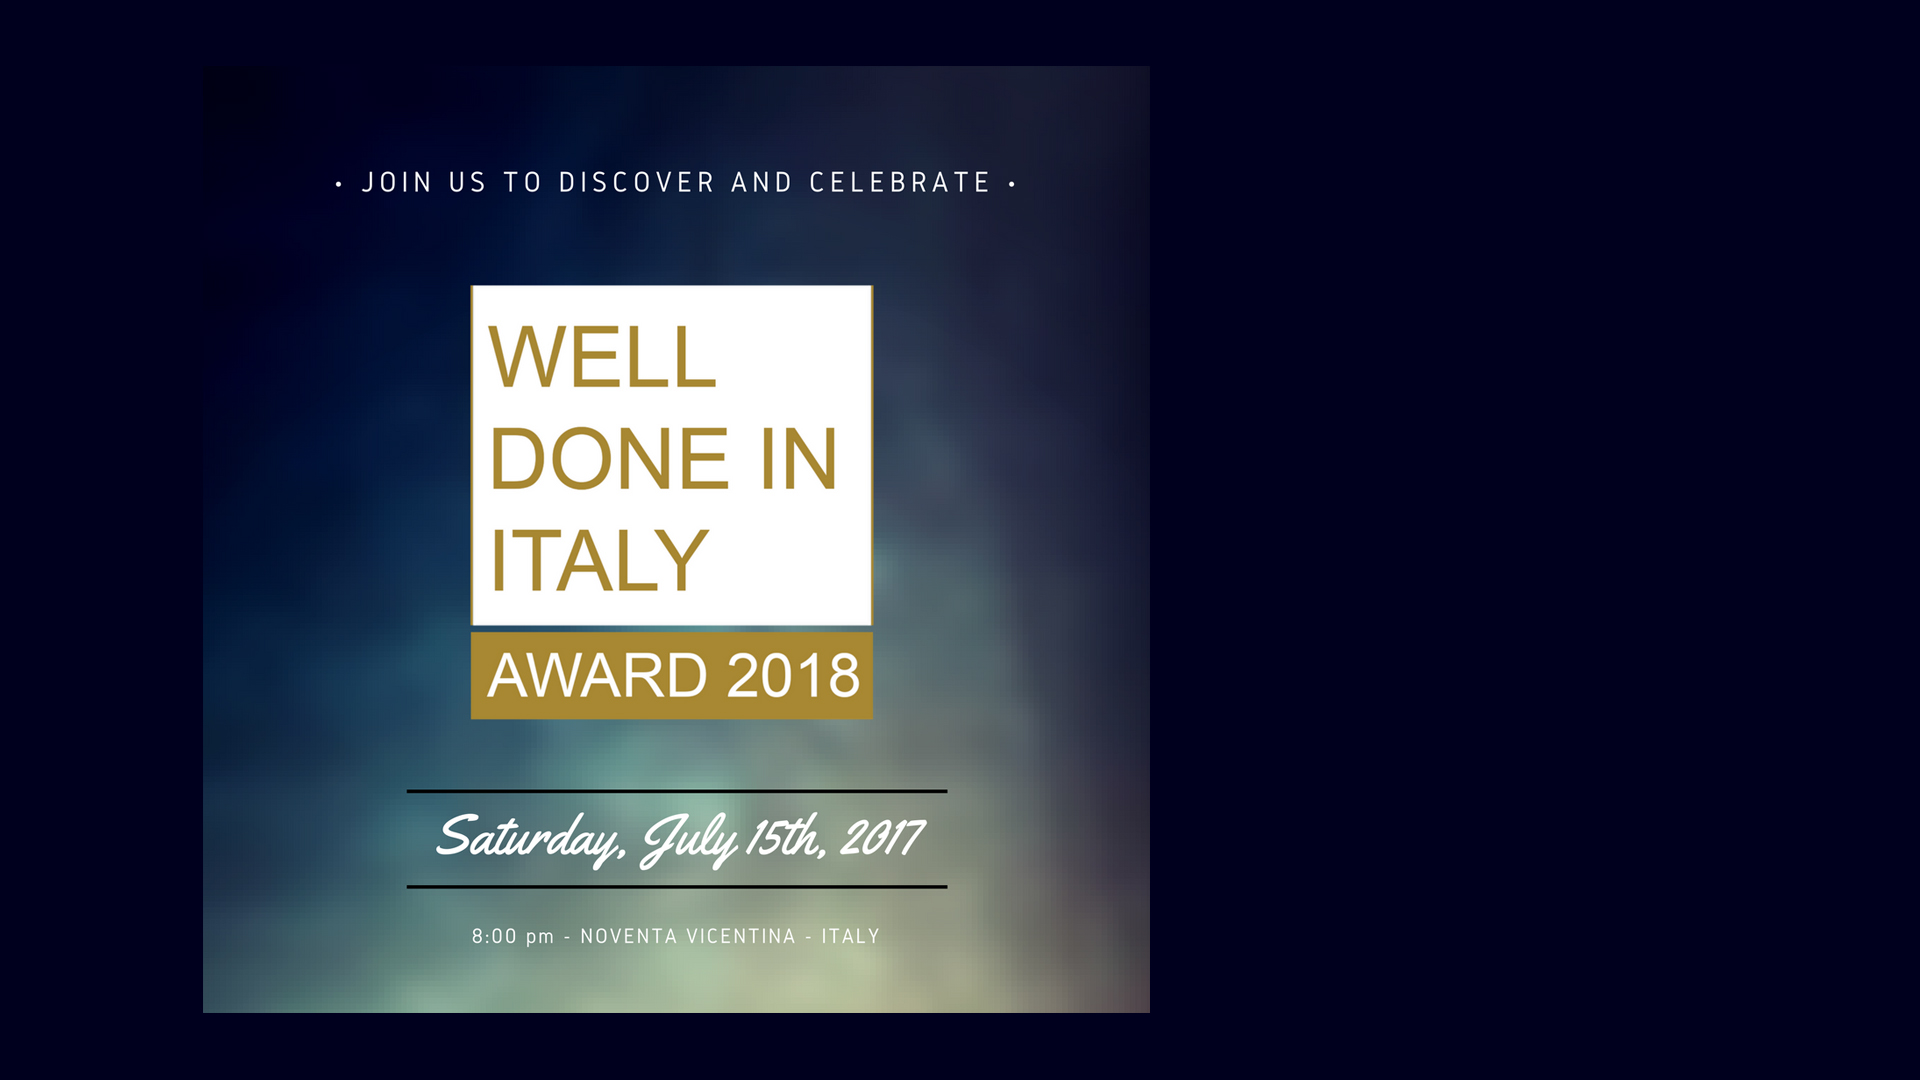 WELL DONE IN ITALY AWARDS